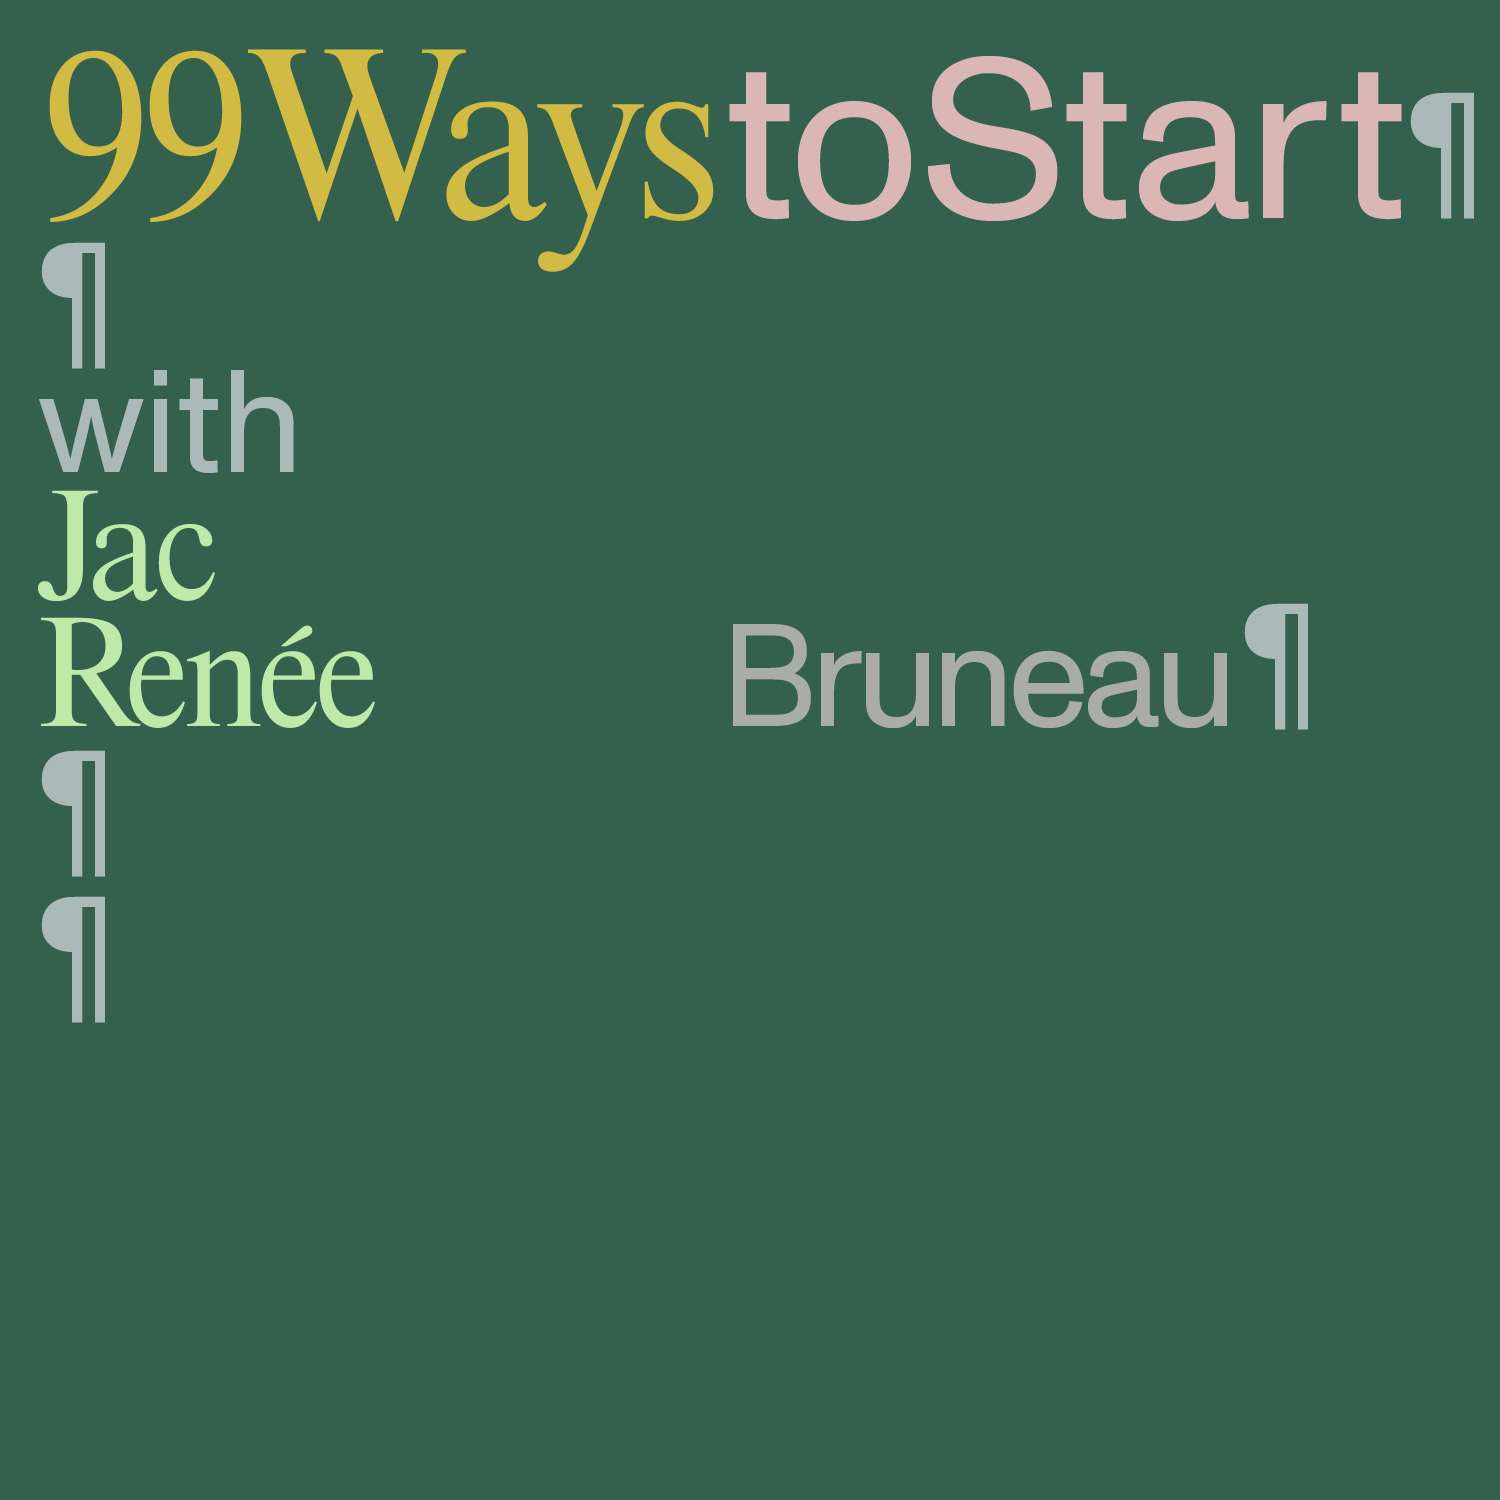 Graphic text on green background, 99 Ways to Start with Jac Renee Bruneau